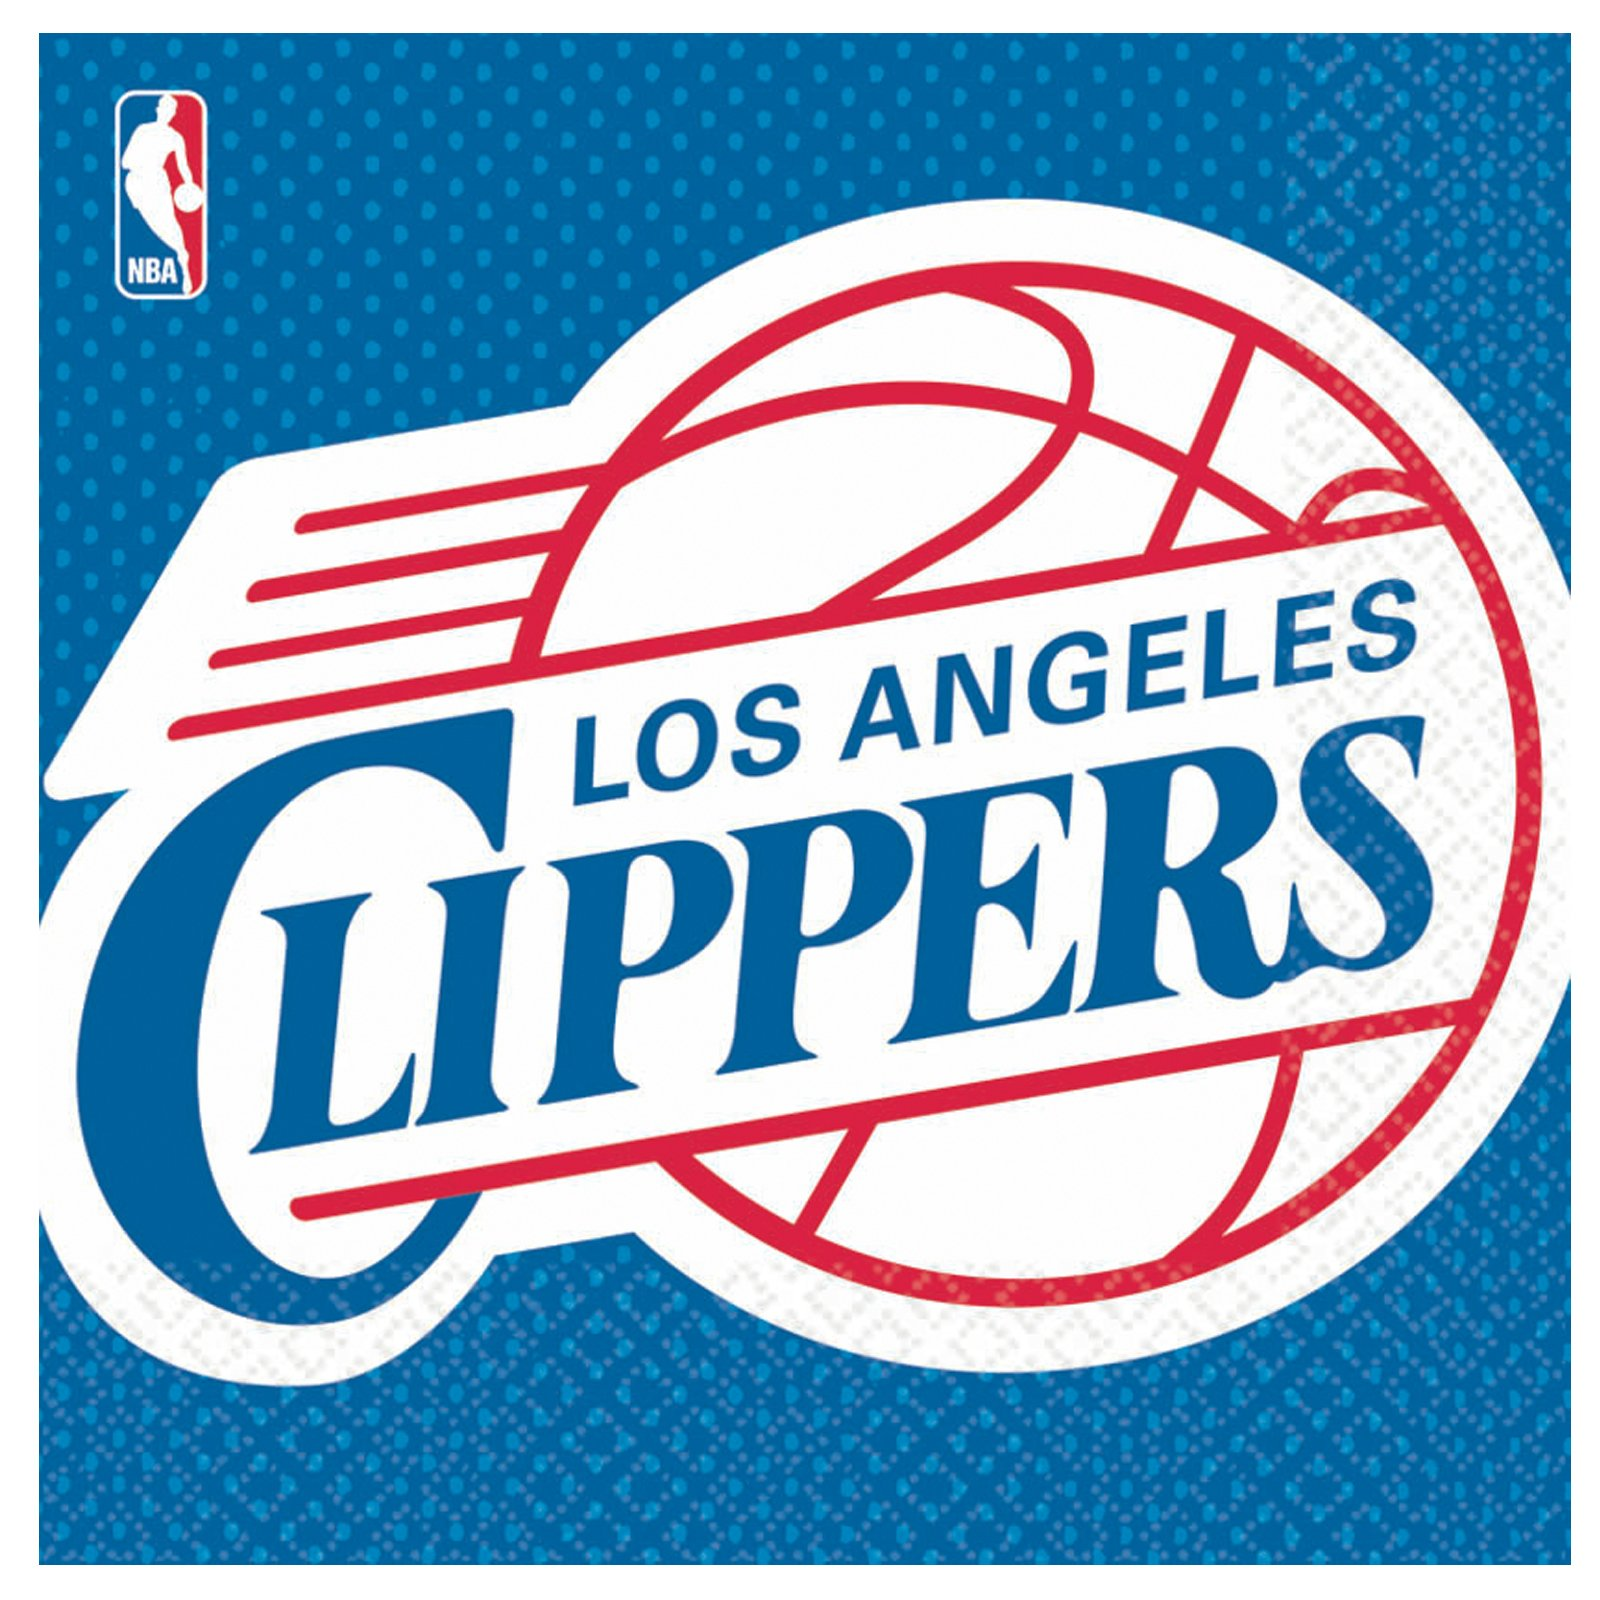 Los Angeles Clippers Basketball - Lunch Napkins (16 count)